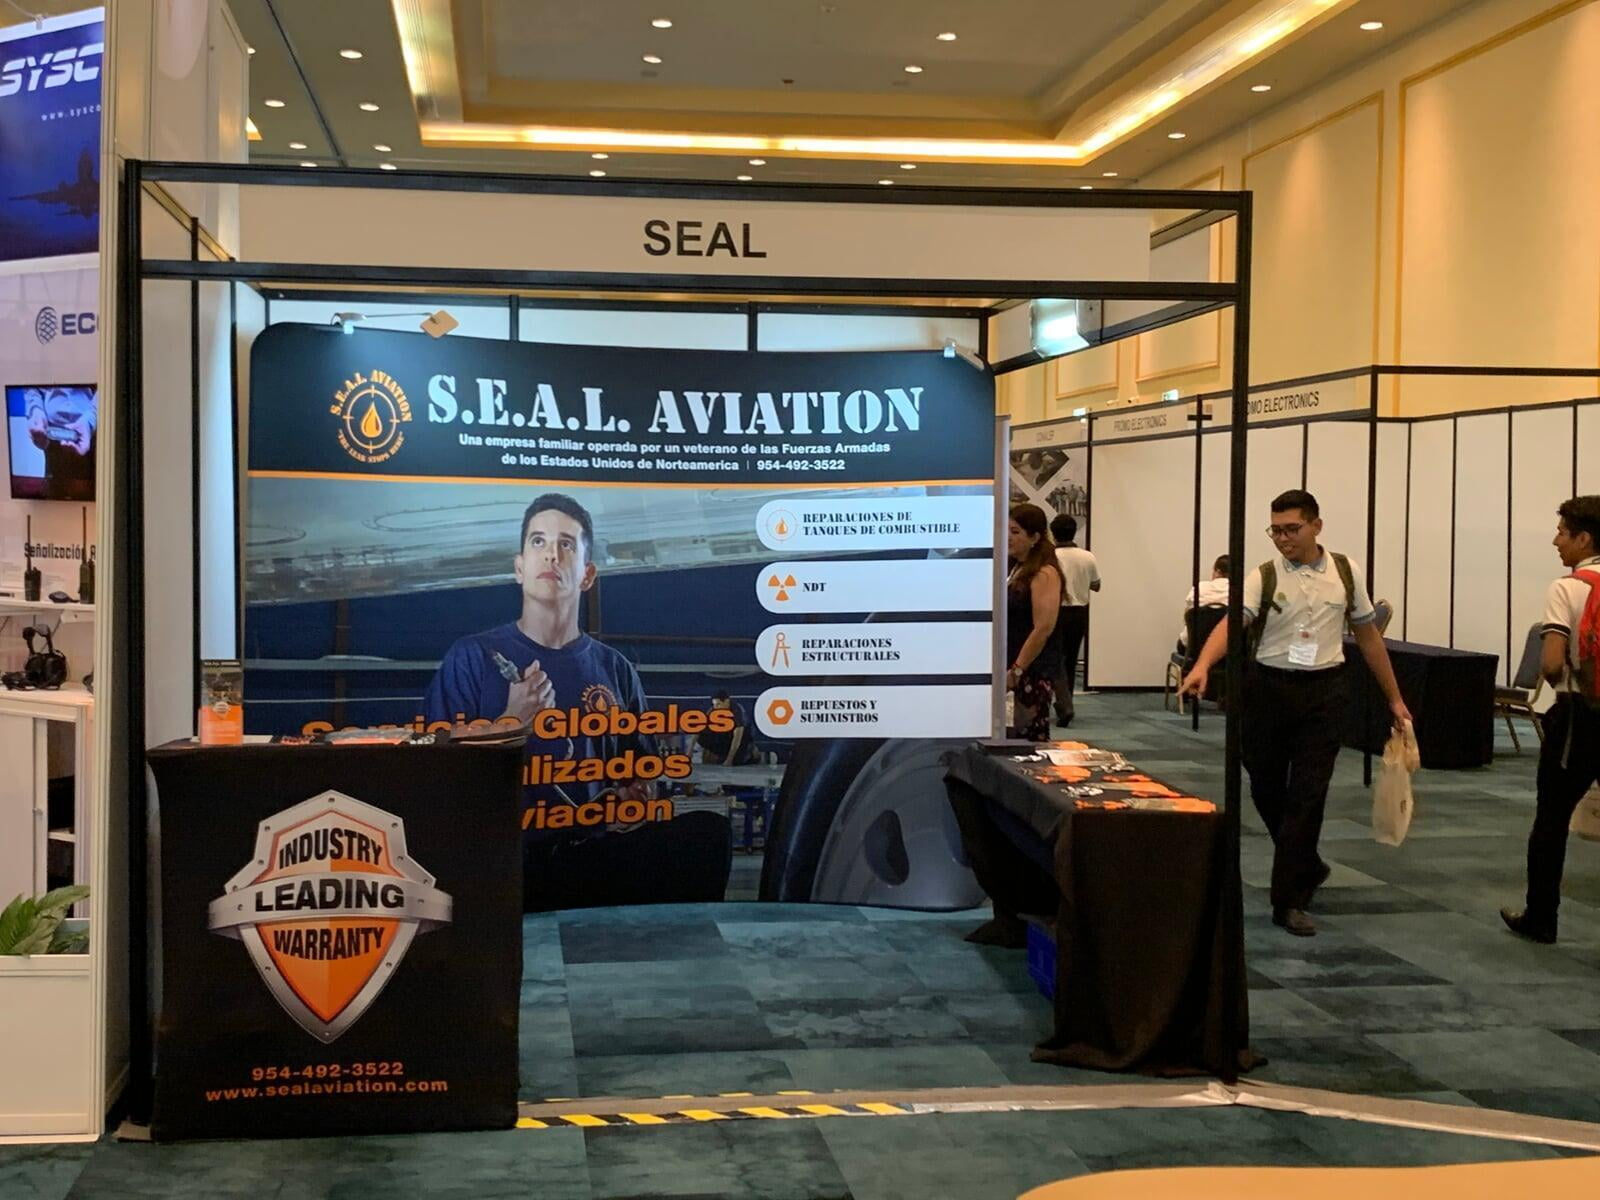 SEAL Aviation booth convention